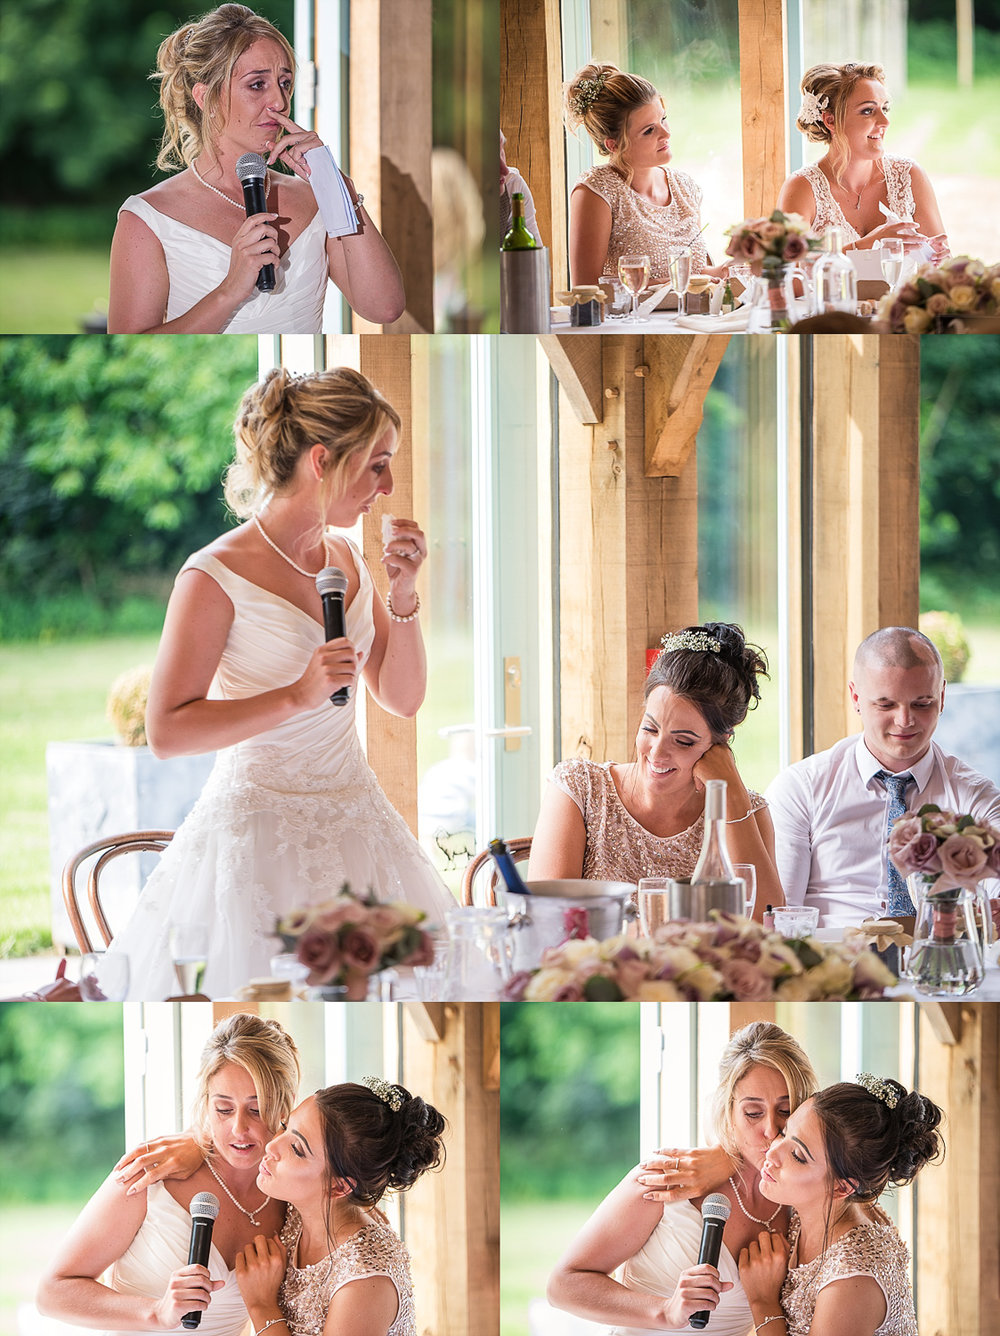 tearful warming speech by bride to her bride